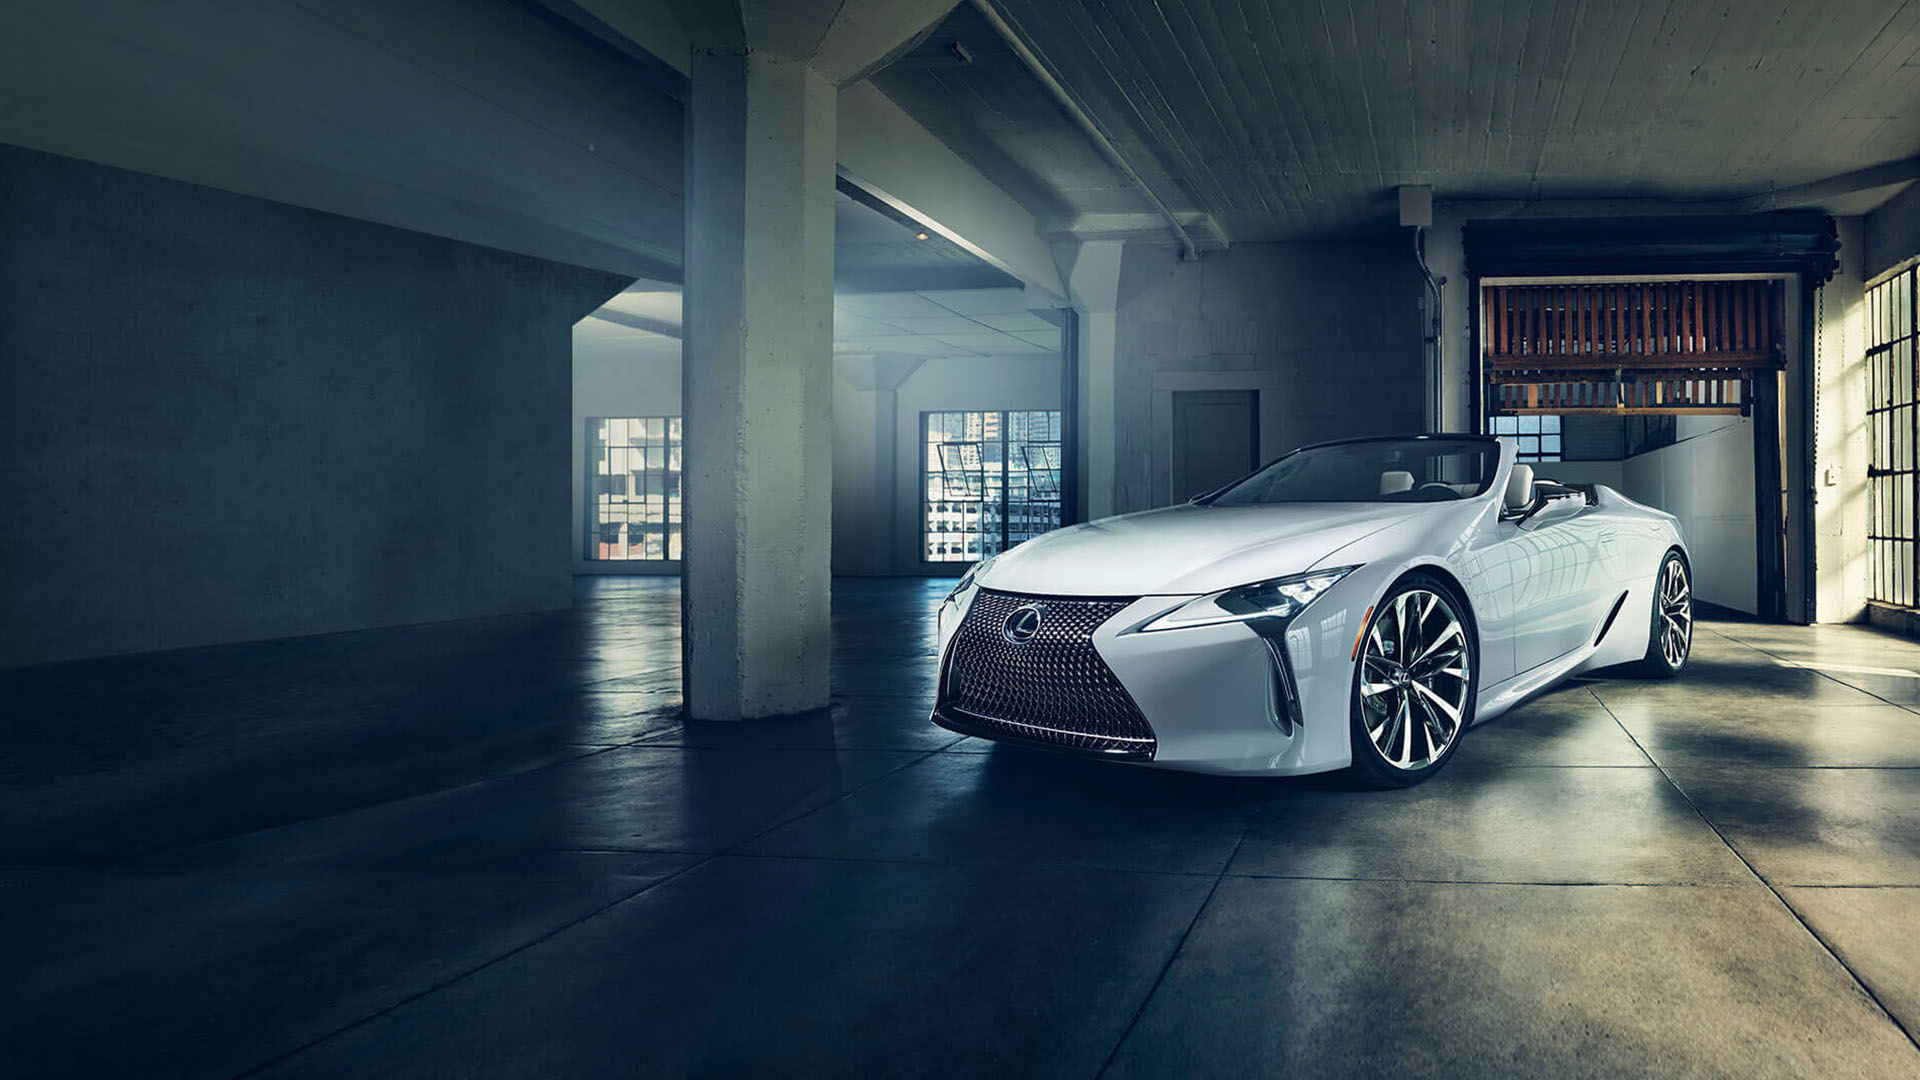 2019 lexus lc convertible hero 1920x1080 v2